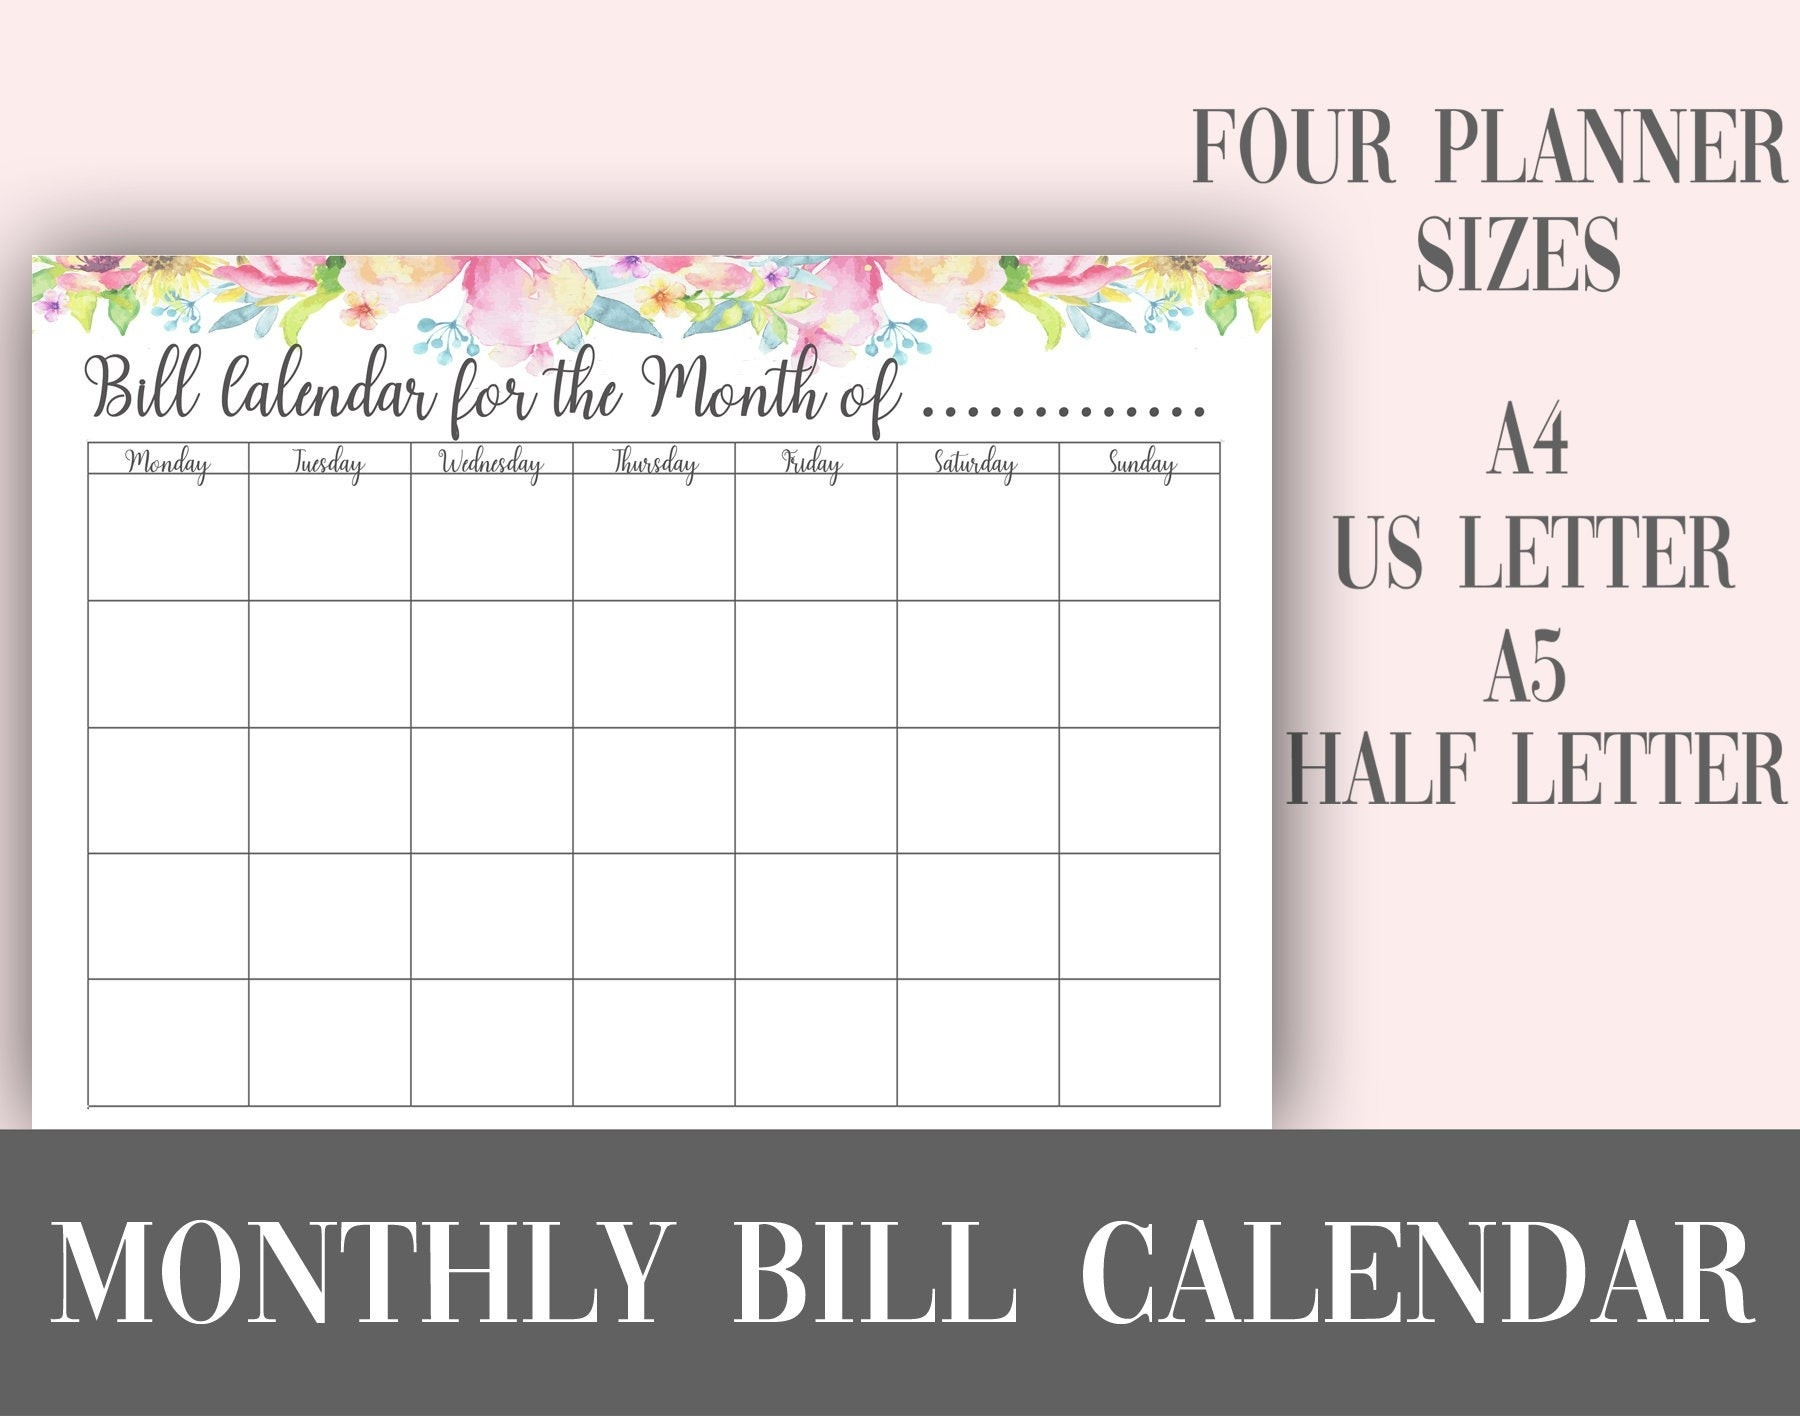 Monthly Bill Calendar Planner Page Printable | A4 Us Letter A5 Half Size |  Planner Insert | Instant Download | Planner Printable-Monthly Bill Calendar Printable